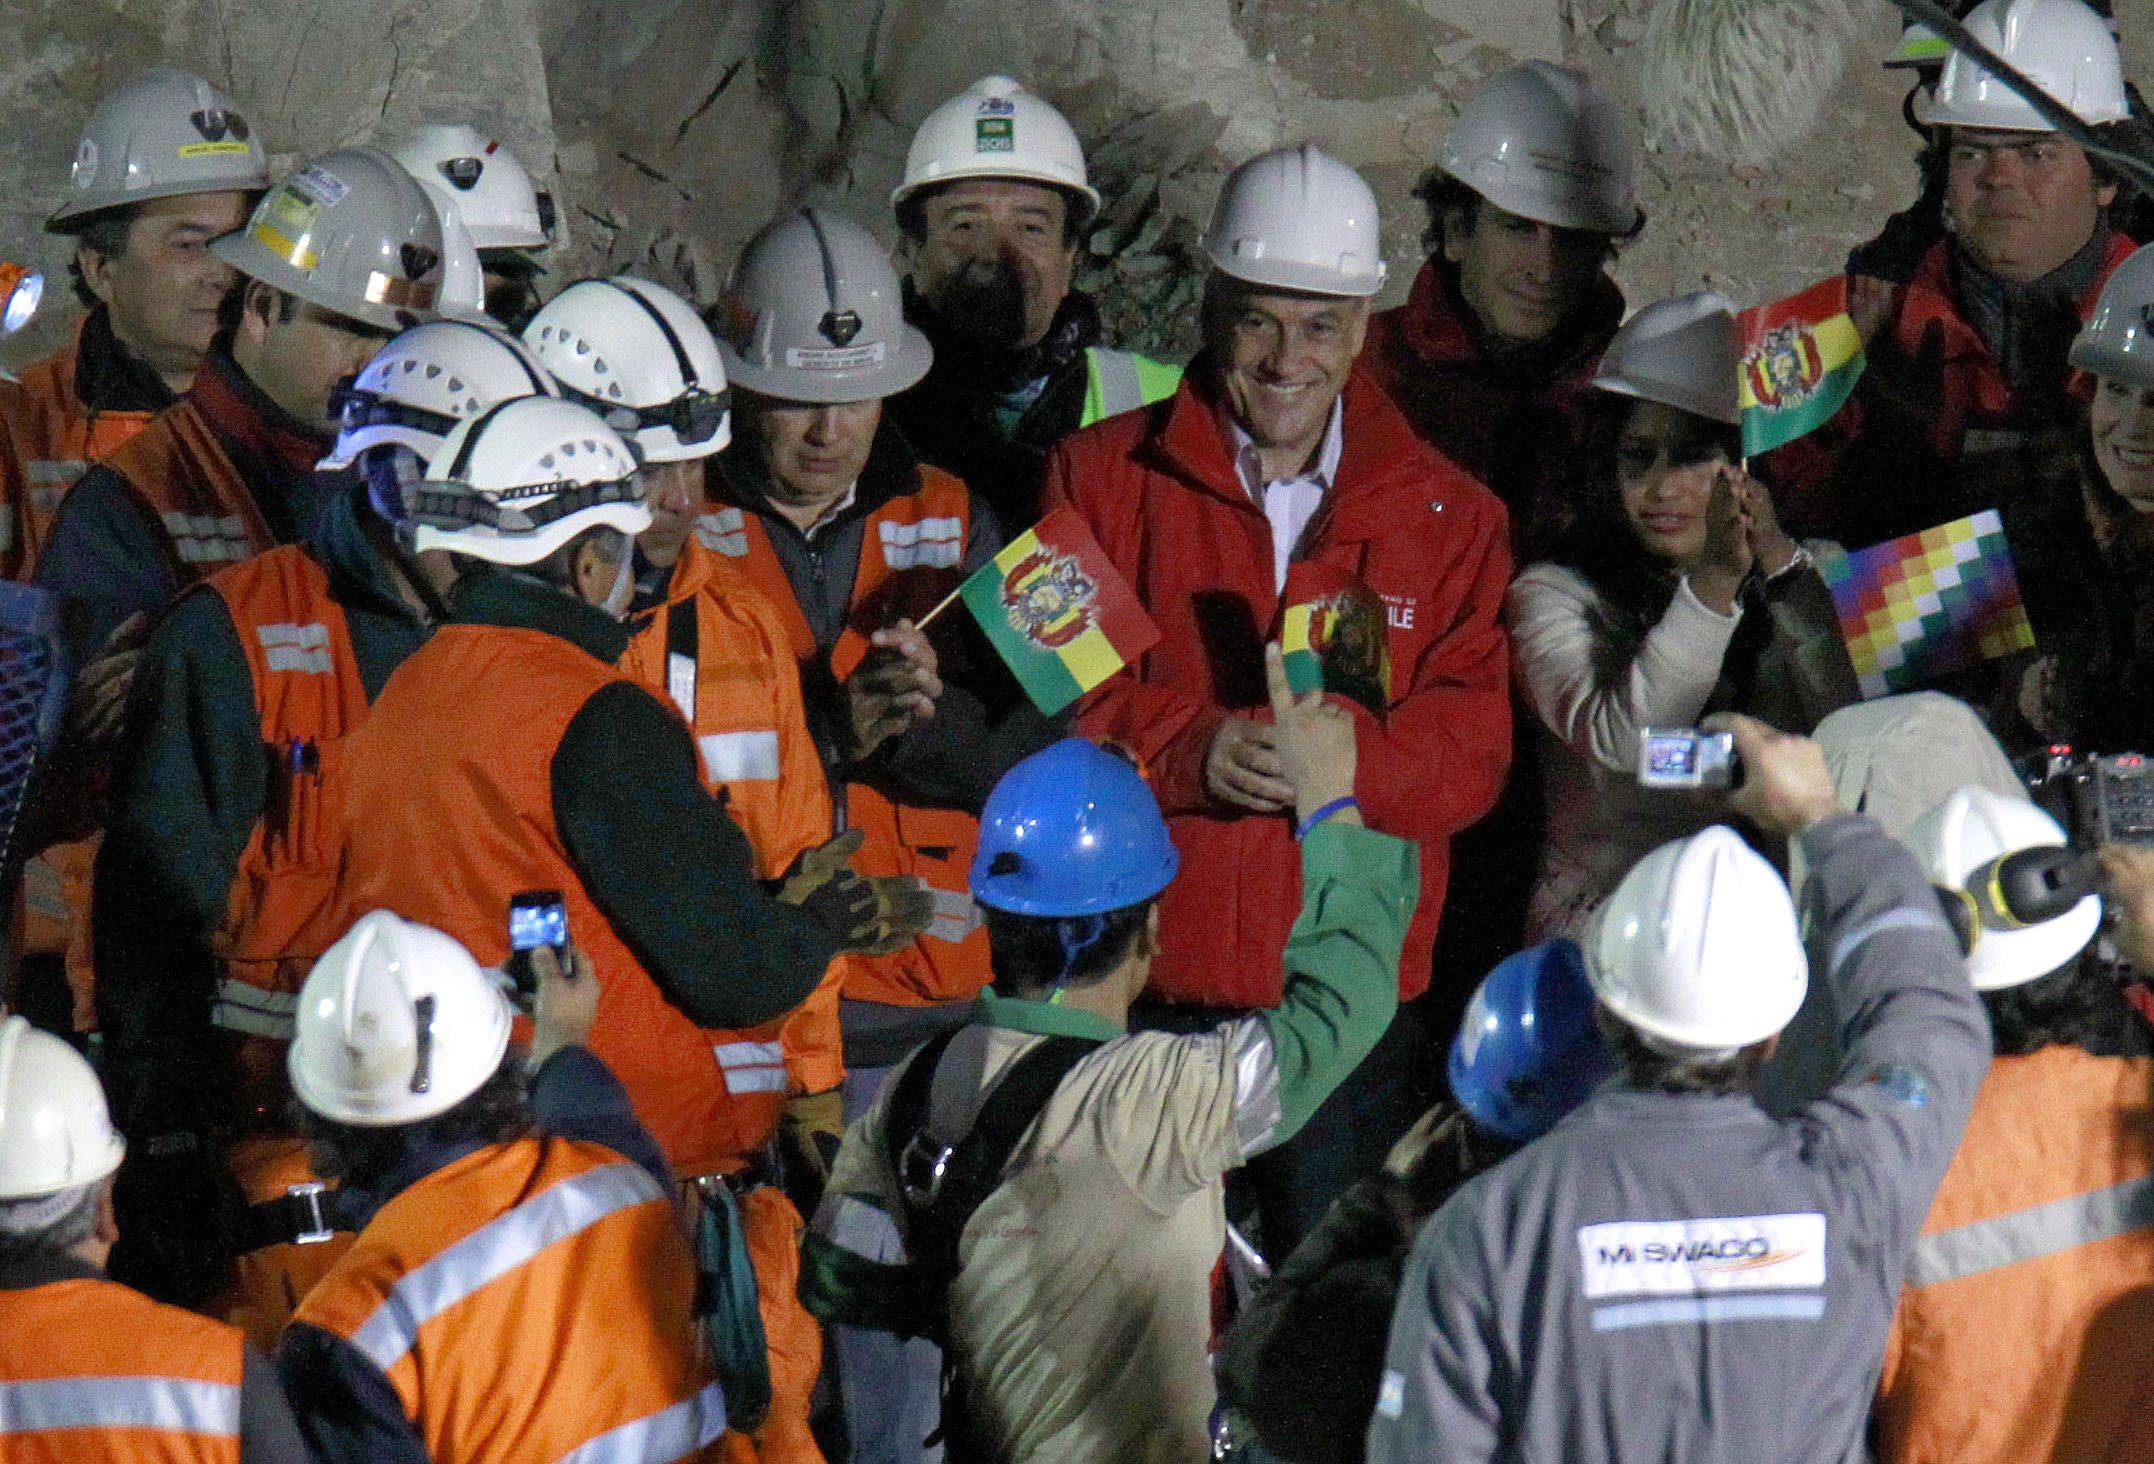 Rescued miner Carlos Mamani Solis, from Bolivia, bottom center, greets Chile's President Sebastian Pinera, top wearing red jacket and holding a Bolivian flag, after being rescued from the collapsed San Jose gold and copper mine where he was trapped with 32 other miners for over two months near Copiapo, Chile, early Wednesday Oct. 13, 2010.